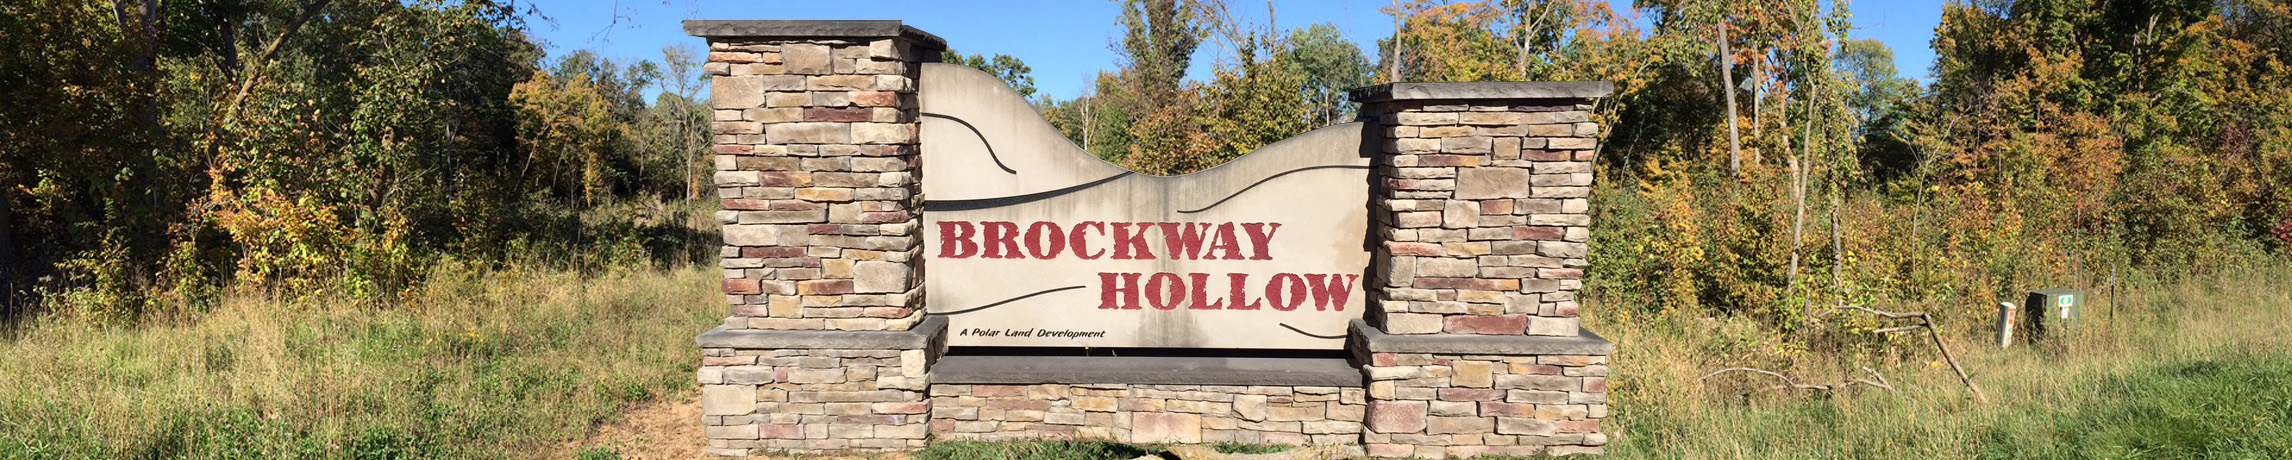 Brockway Hollow